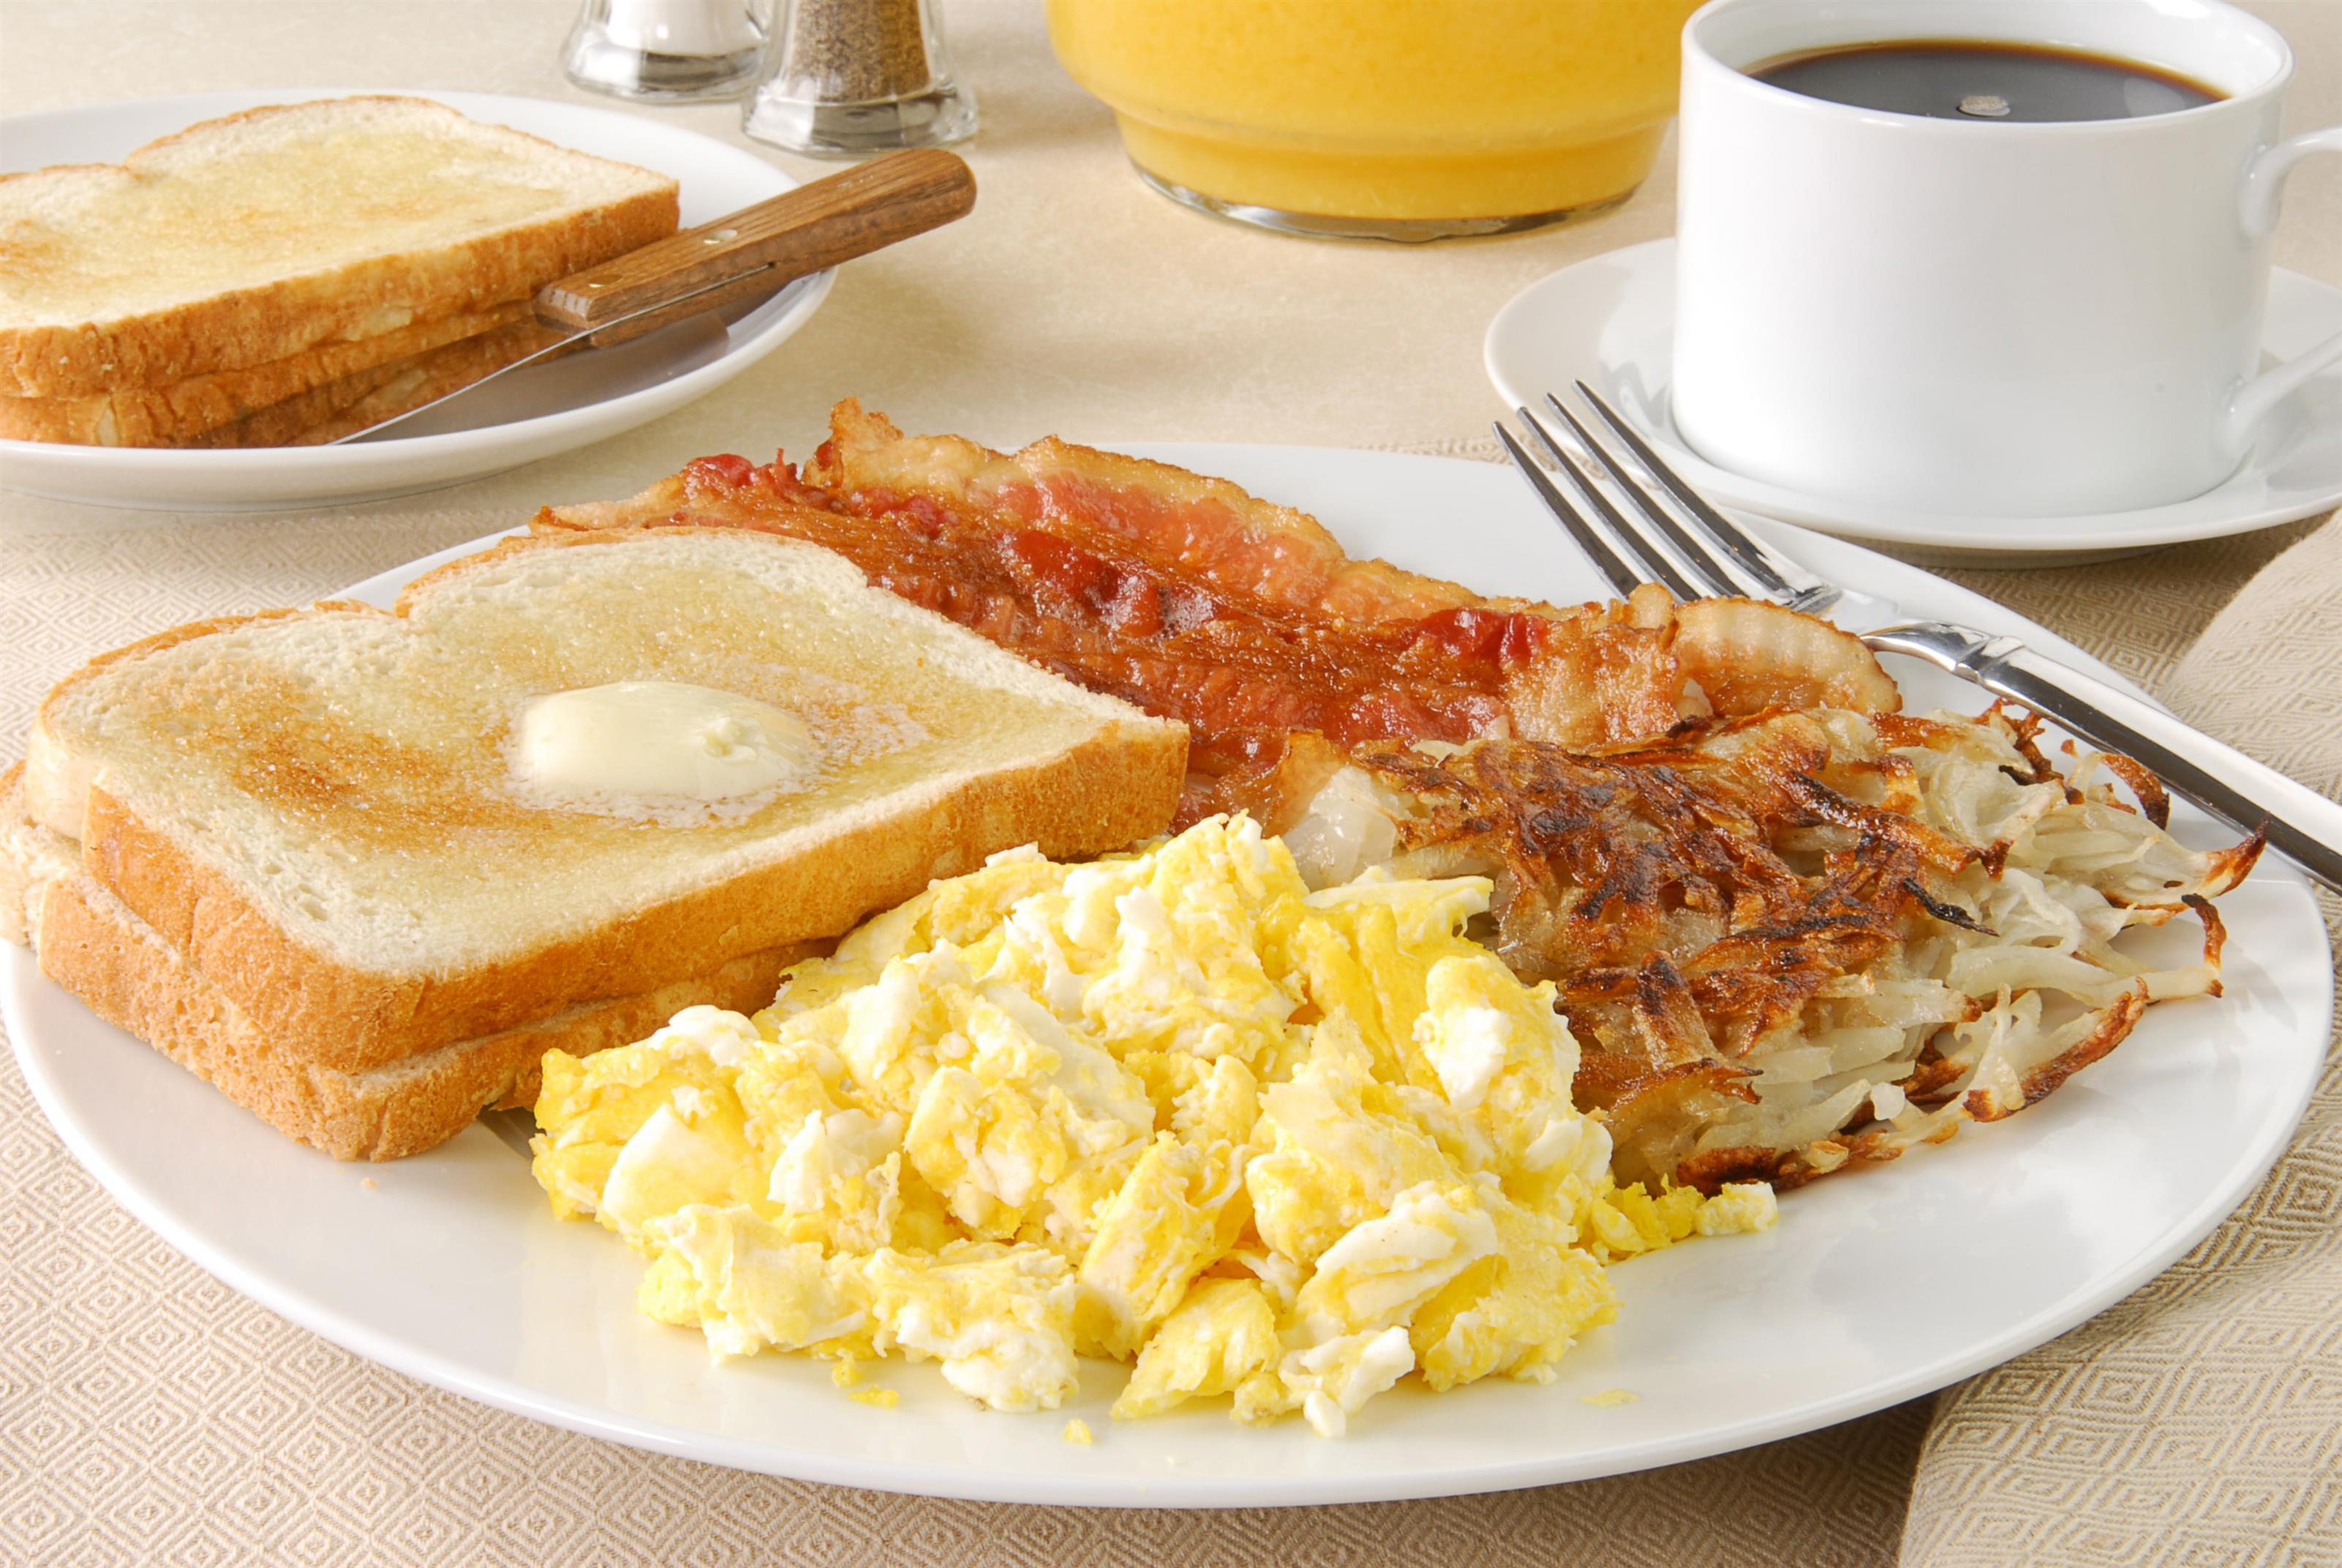 Scrambled eggs, hashbrowns, bacon & toast